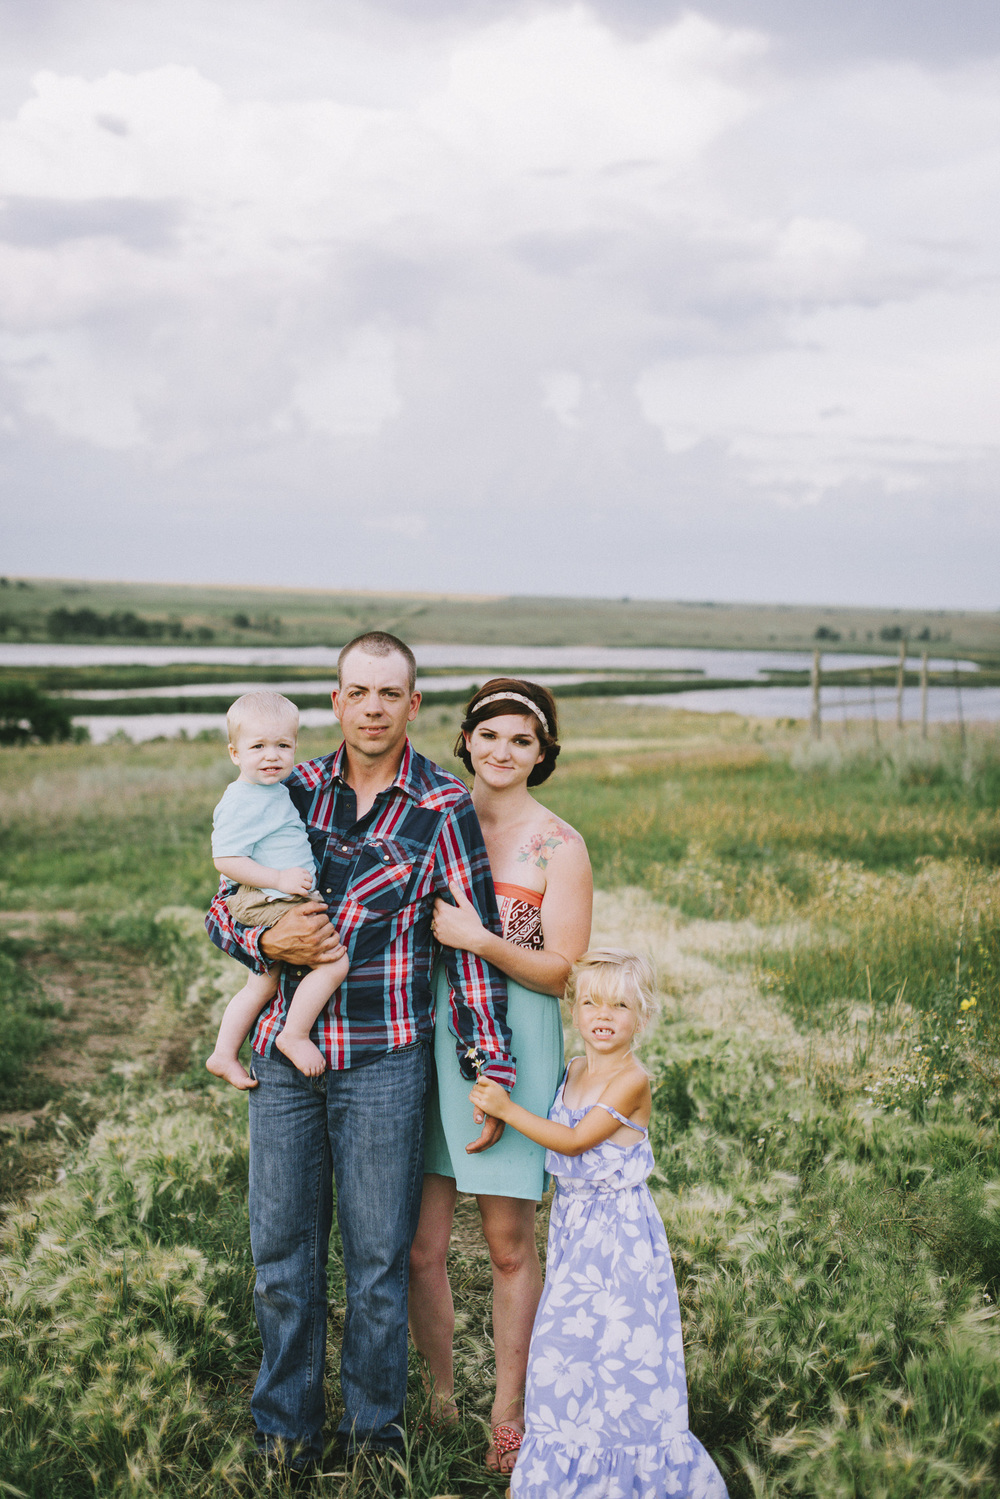 060416Hanson FamilyJULY15 JUSTINE & ERIC FAMILY PHOTOGRAPHER NORTH DAKOTA PHOTOGRAPHER DEBI RAE PHOTOGRAPHY-74.jpg